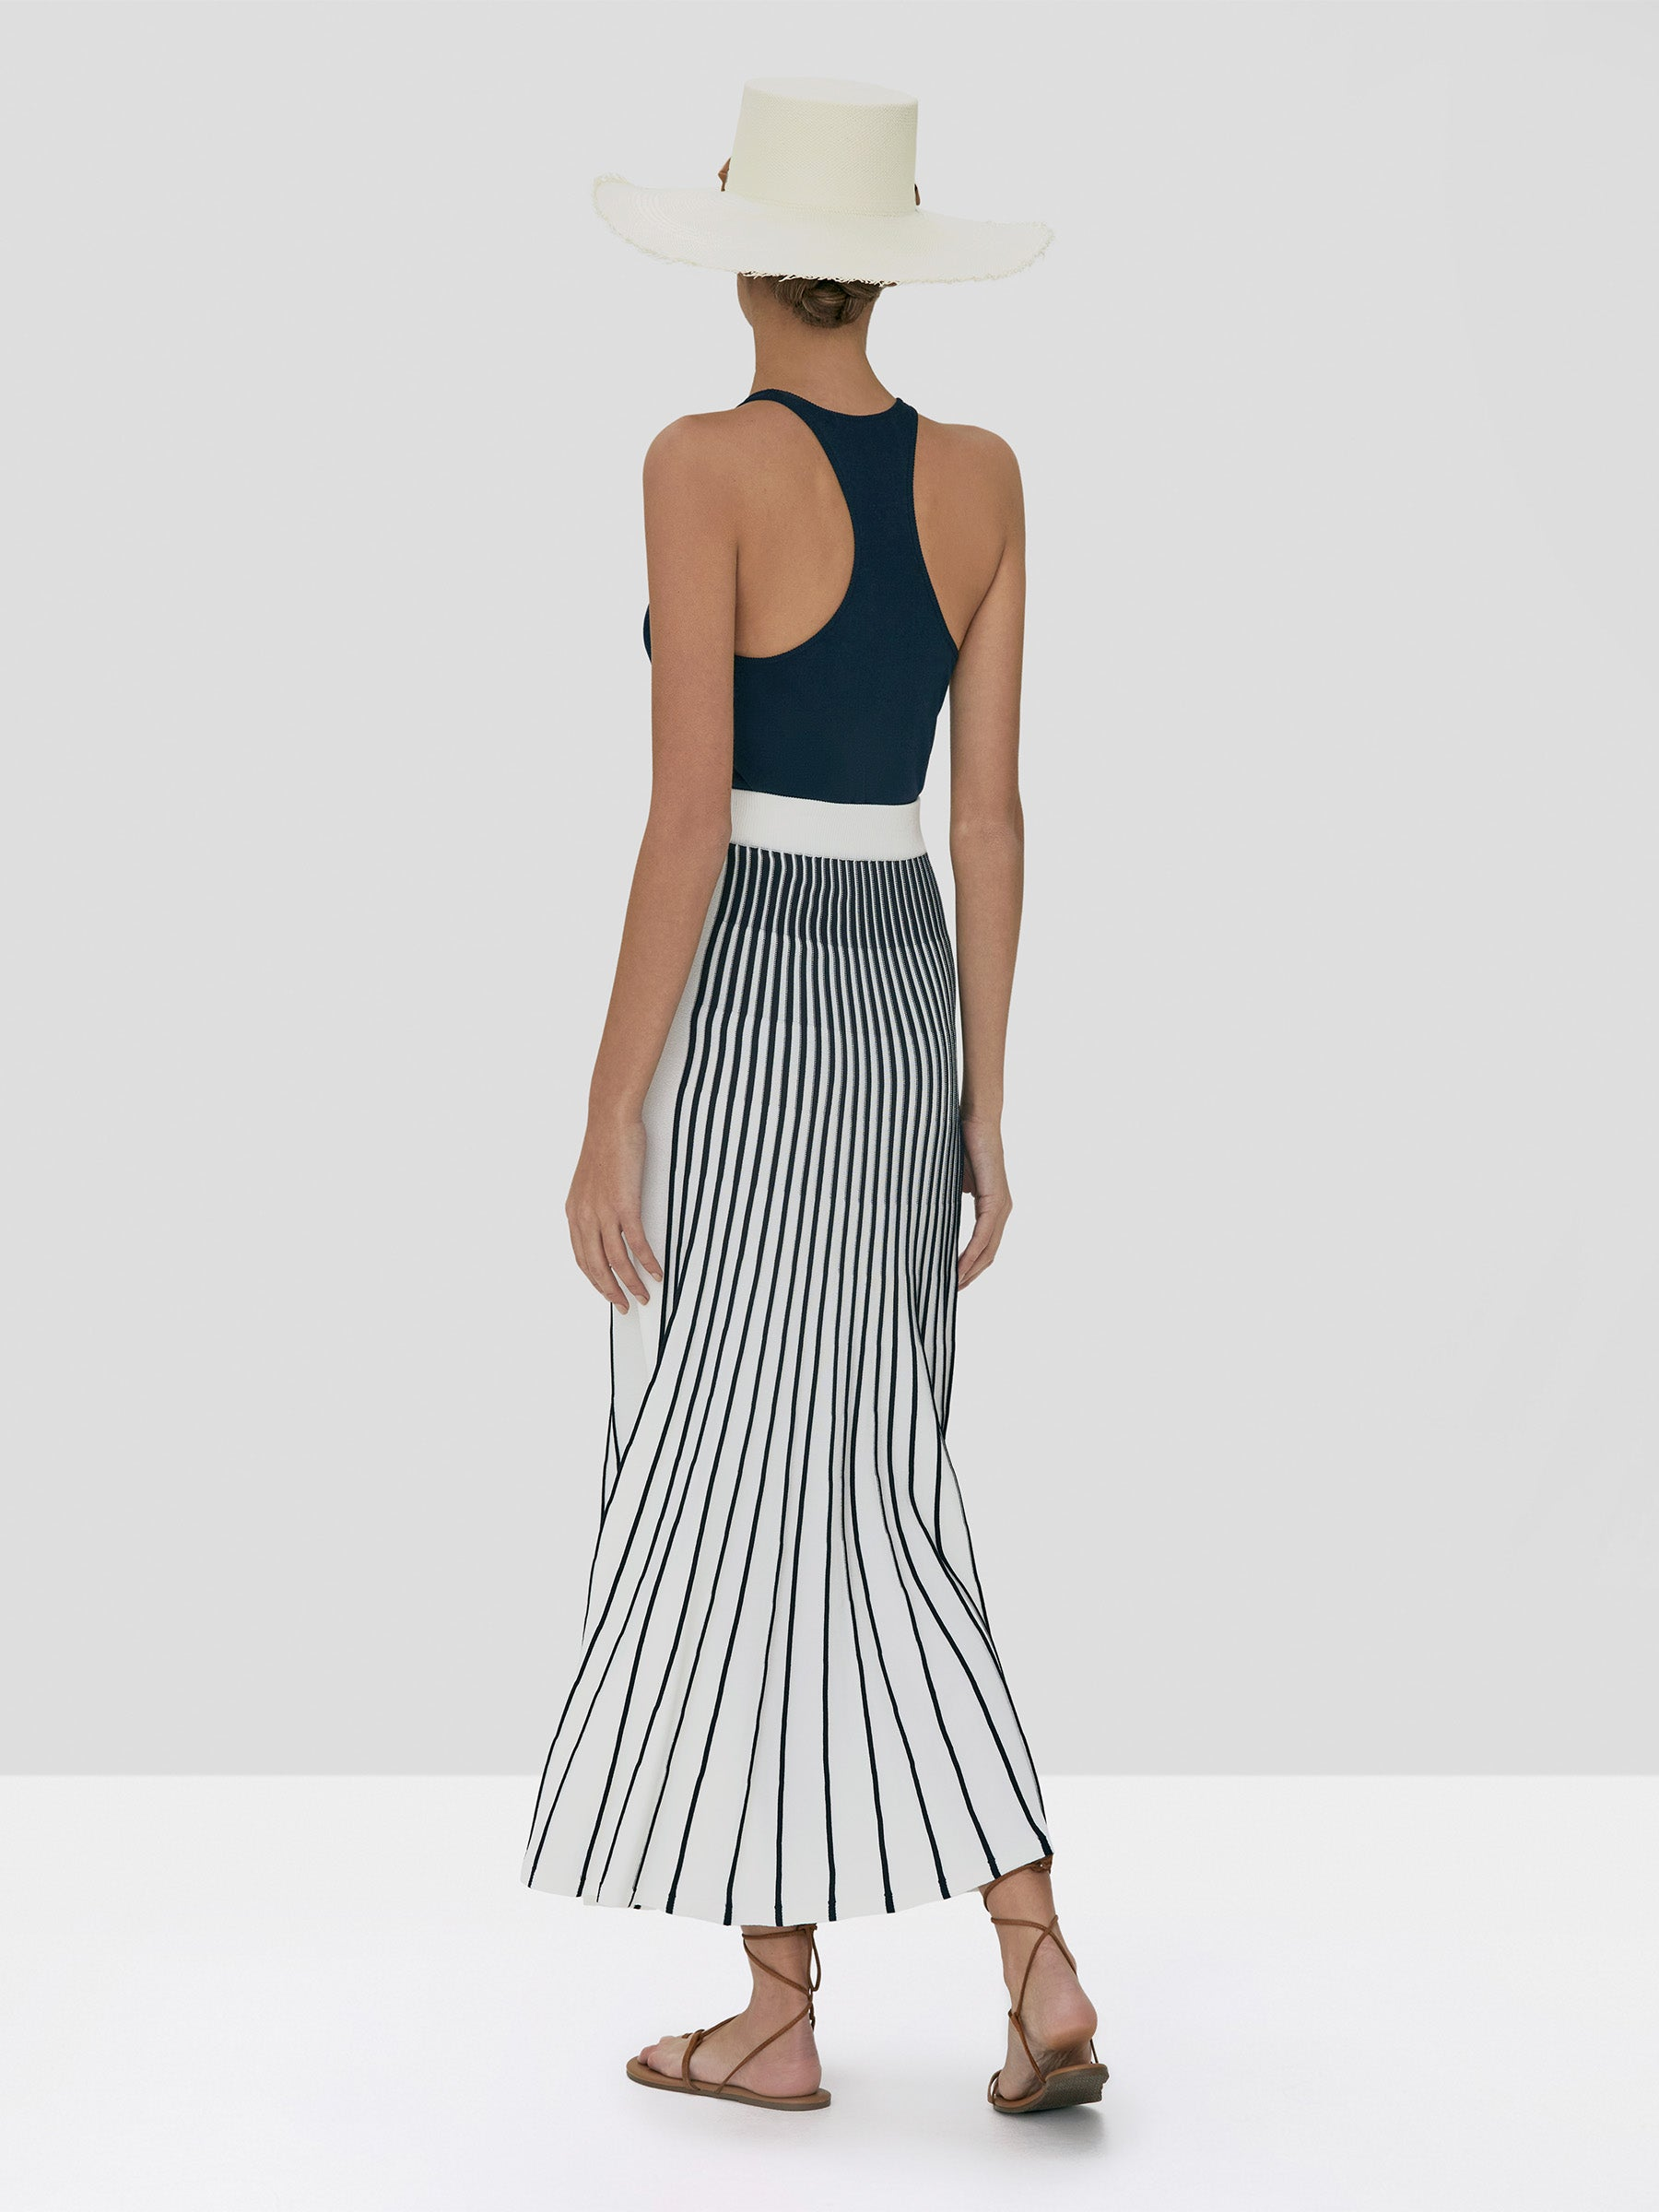 Alexis Zeni Top in Navy and Vani Skirt in Navy White Stripe from Spring Summer 2020 - Rear View